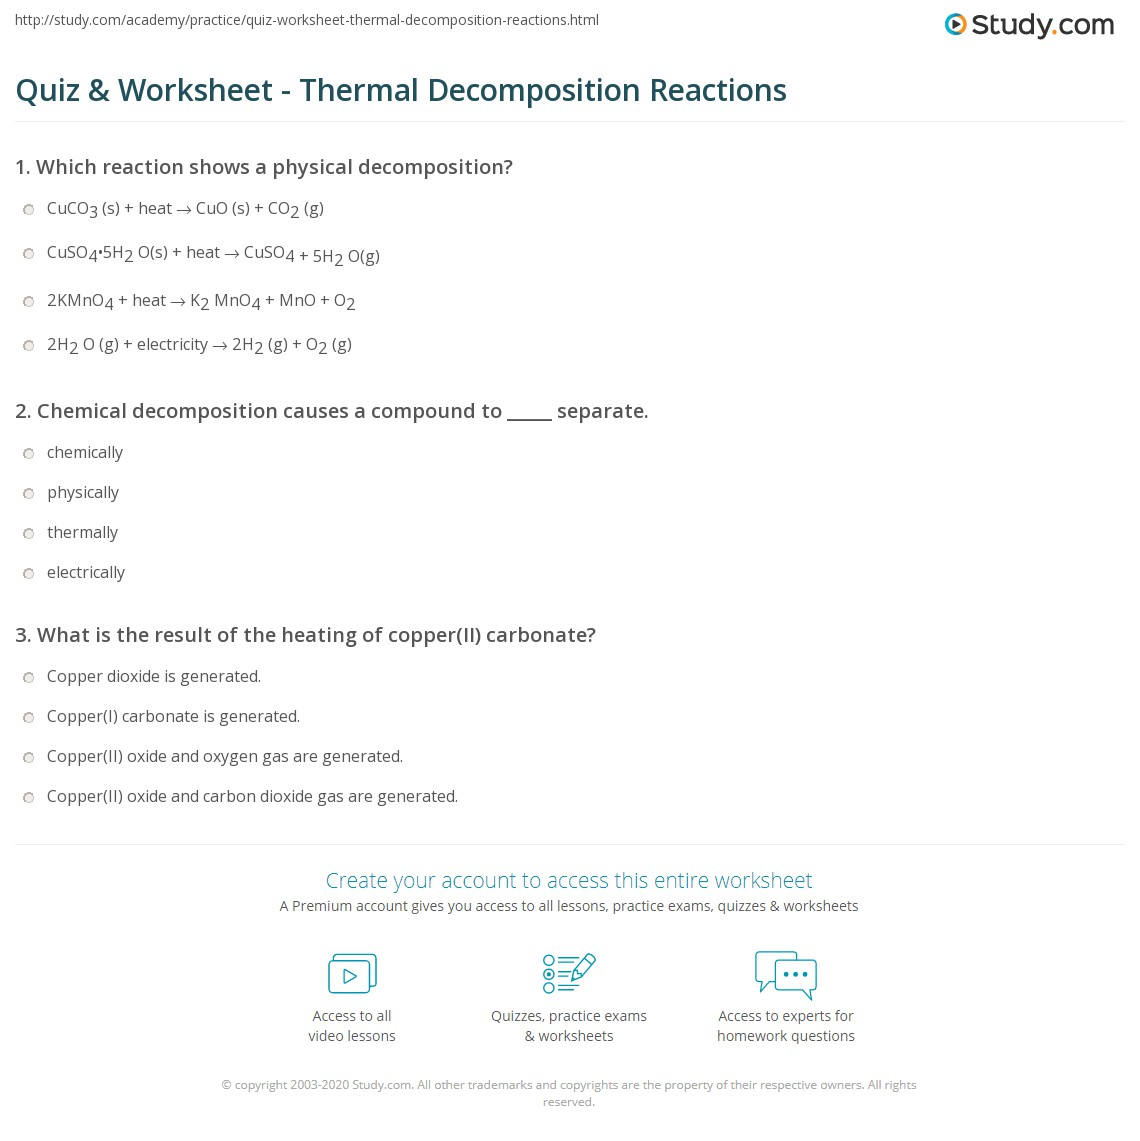 Quiz & Worksheet - Thermal Decomposition Reactions | Study.com